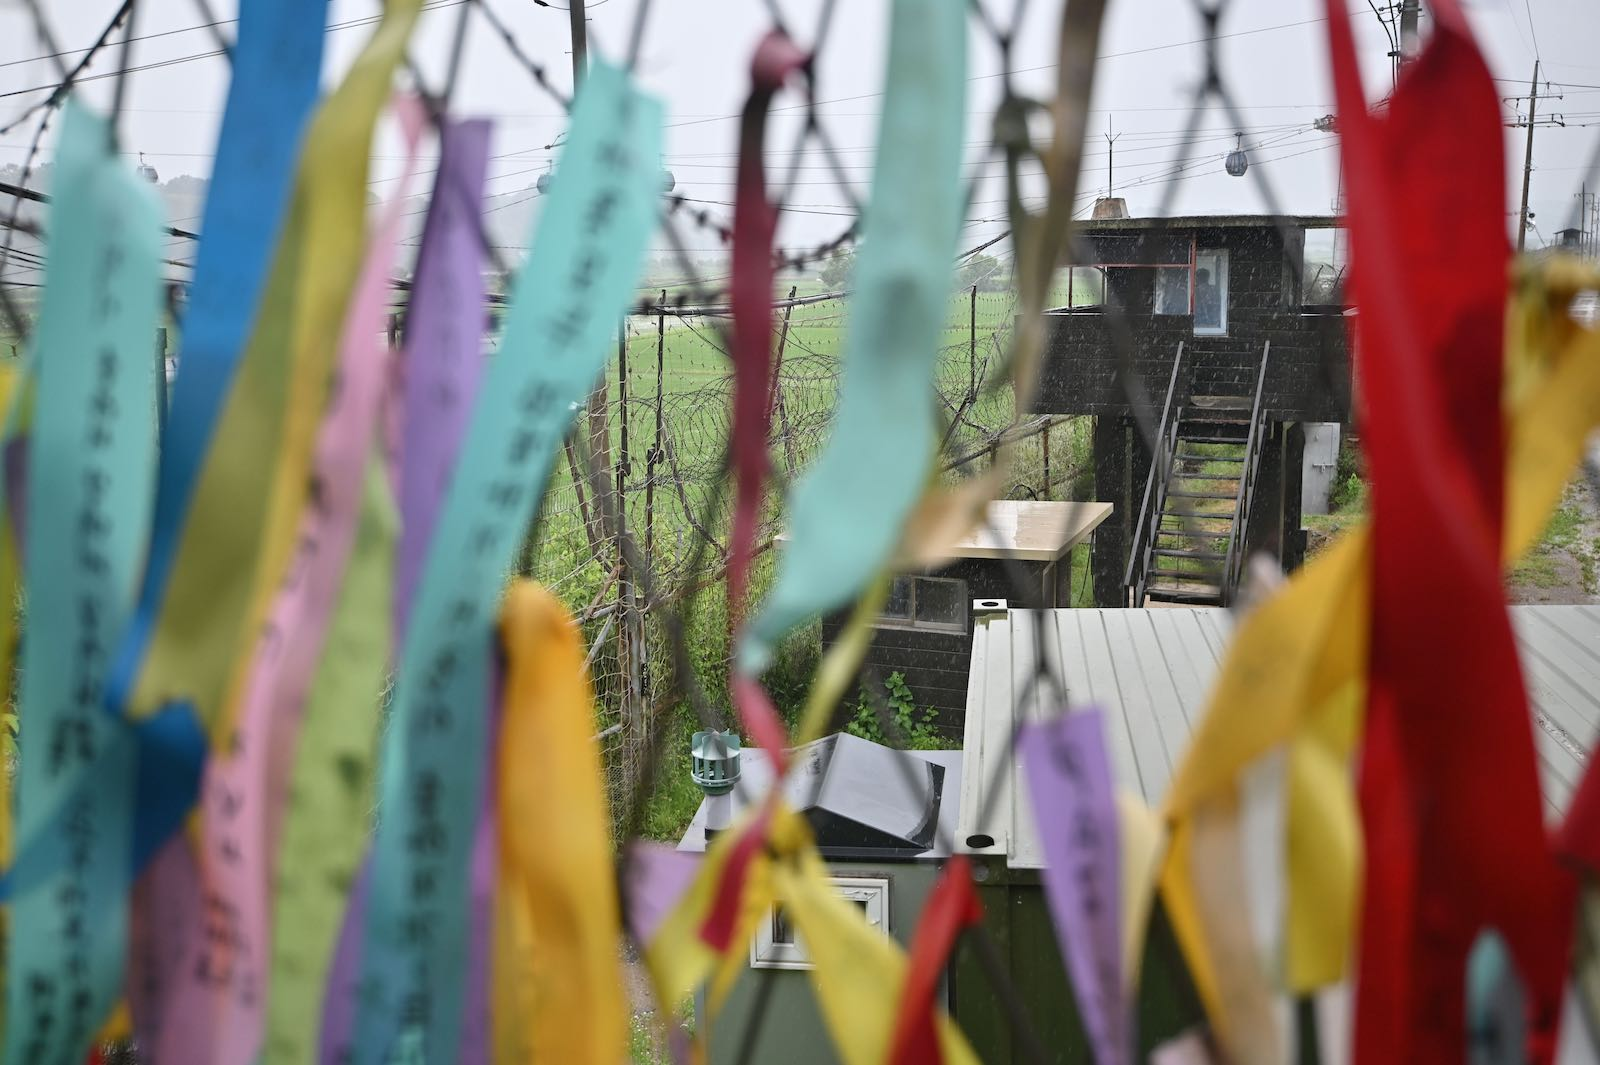 A South Korean guard post seen through a fence decorated with ribbons with messages of peace and reunification, at Imjingak peace park in the border city of Paju, June 2020 (Jung Yeon-je/AFP via Getty Images)